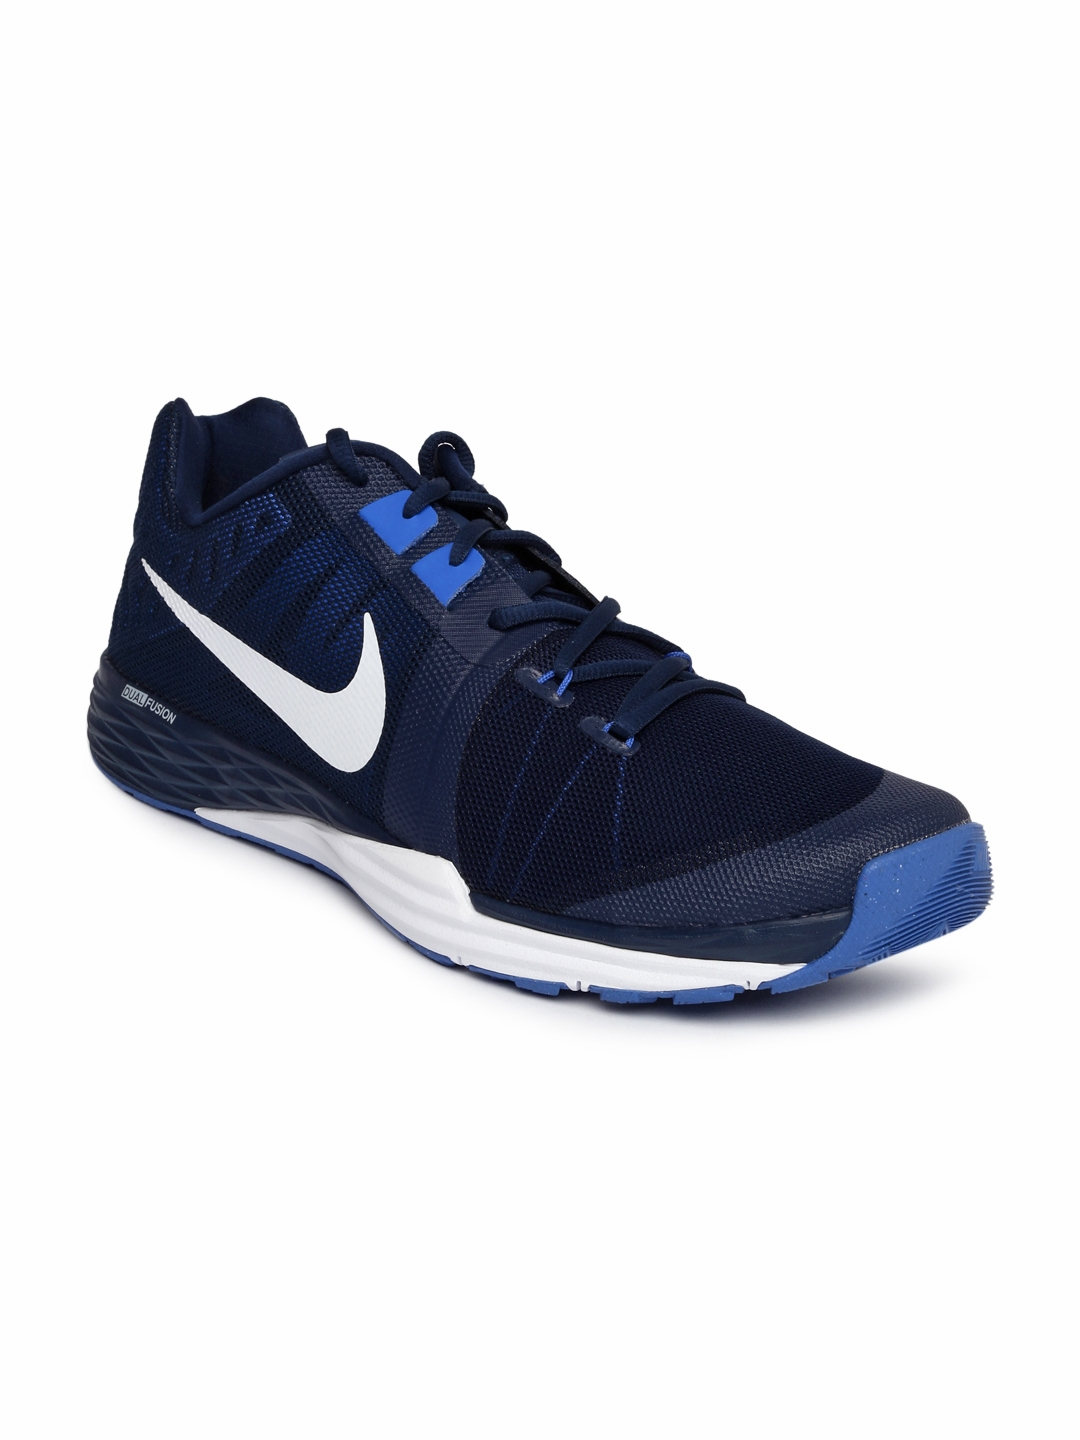 Buy Nike Men Navy Blue TRAIN PRIME IRON Training Shoes - Sports ... 8307d5594e